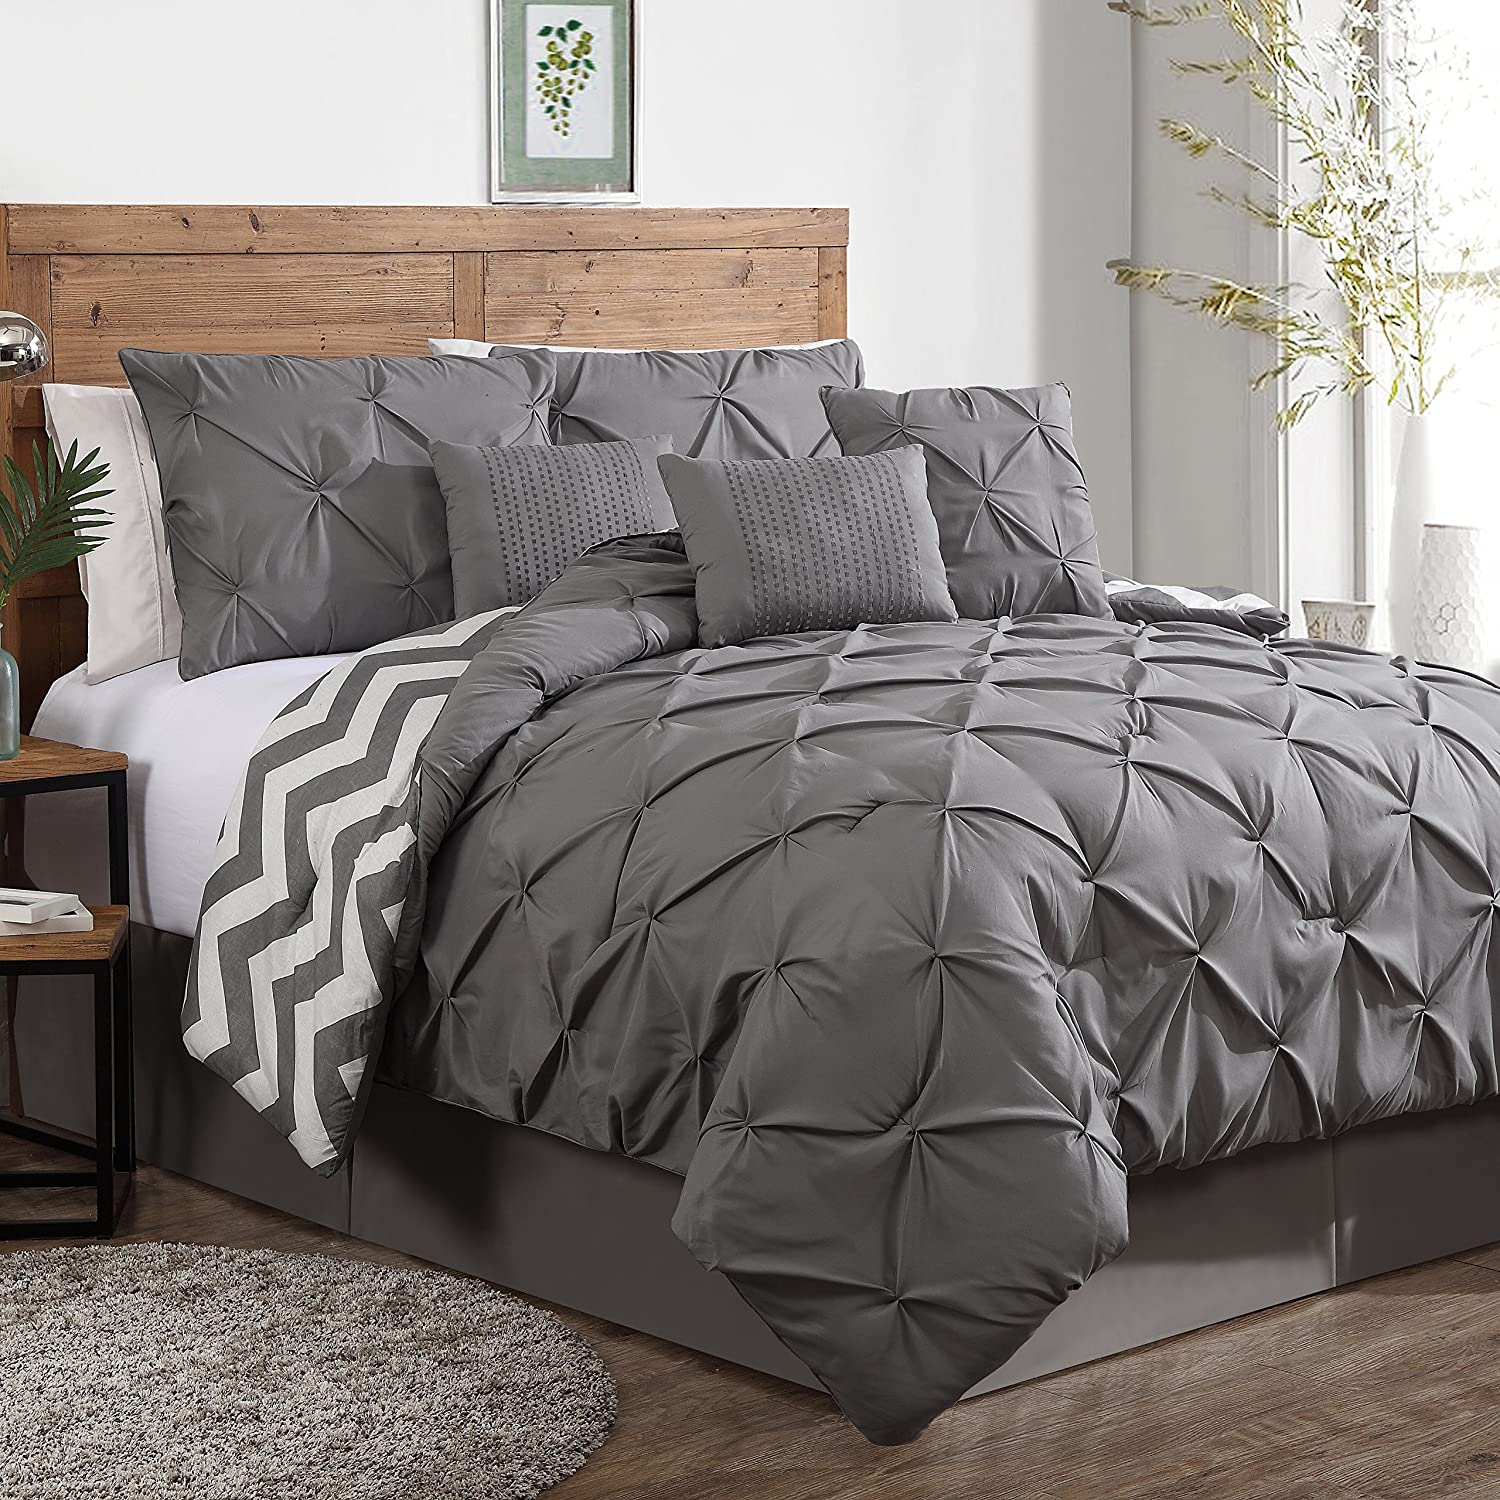 Geneva Home Fashion 7-Piece Ella Pinch Pleat Comforter Set, Queen, Grey ELL7CSQUENGHGY